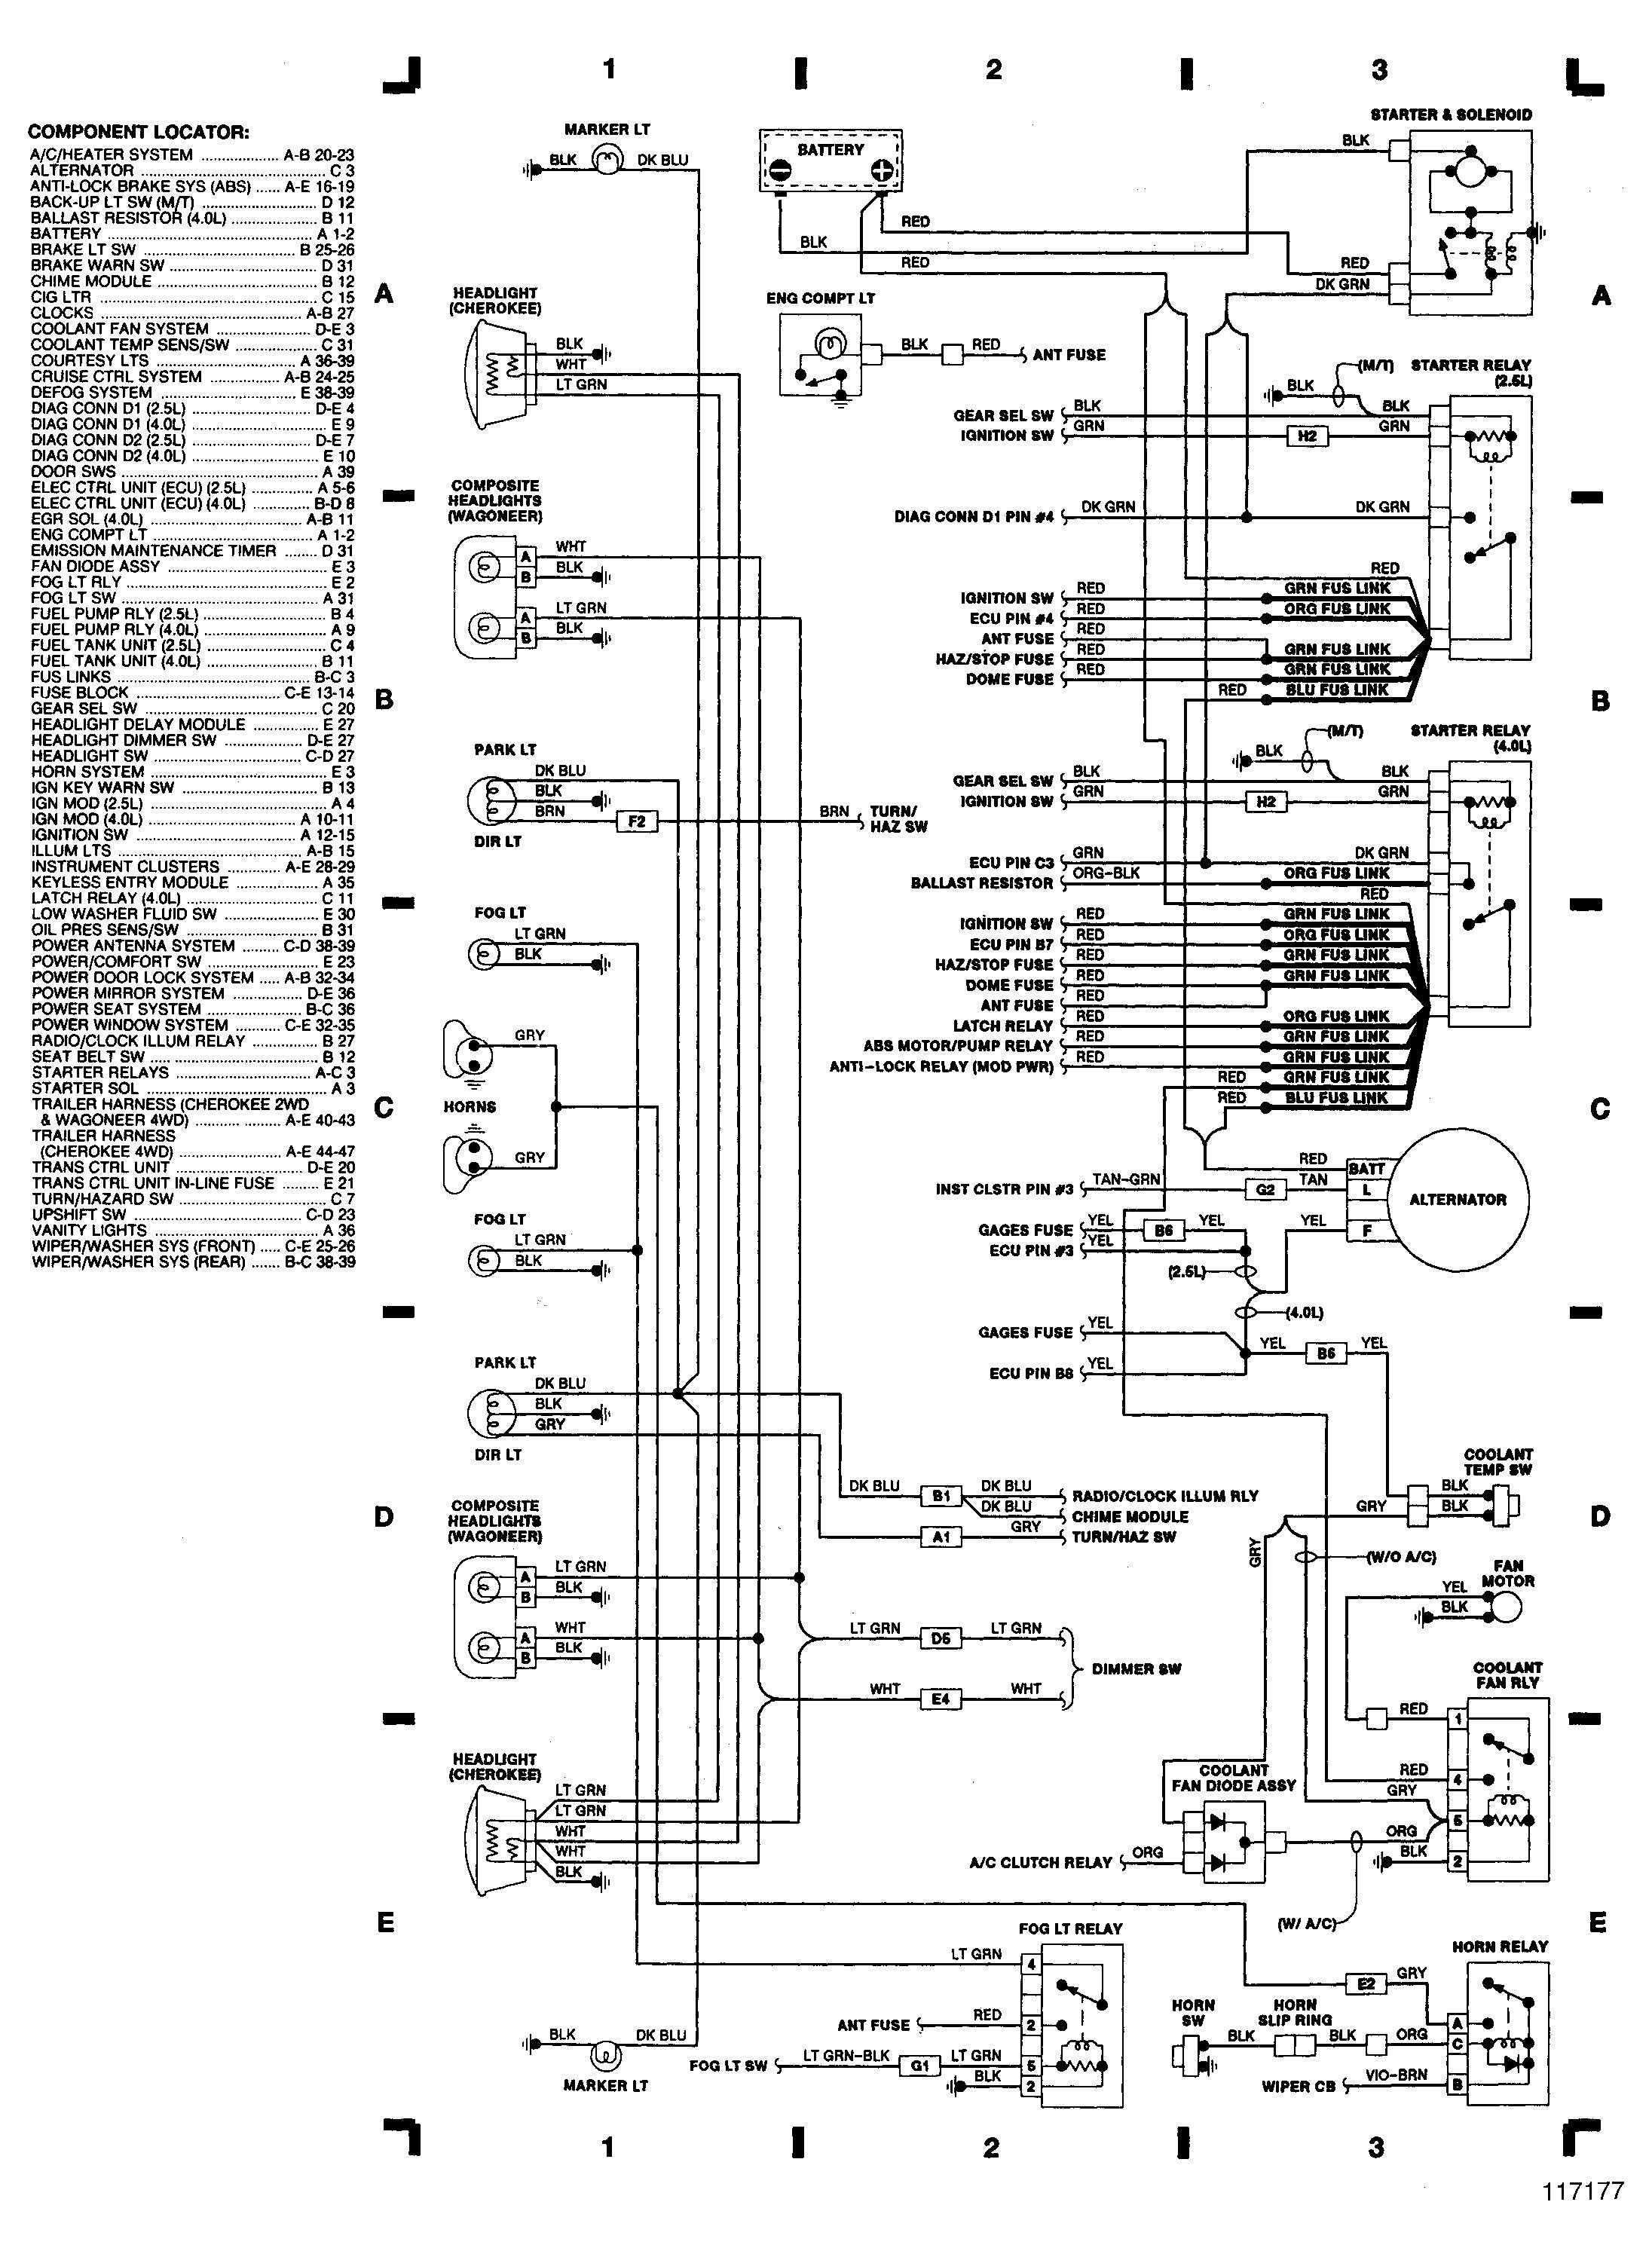 Awesome Wiring Diagram Jeep Grand Cherokee #diagrams #digramssample  #diagramimages #wiringdiagramsample #wiringdiagram | Jeep grand cherokee, Jeep  cherokee, JeepPinterest